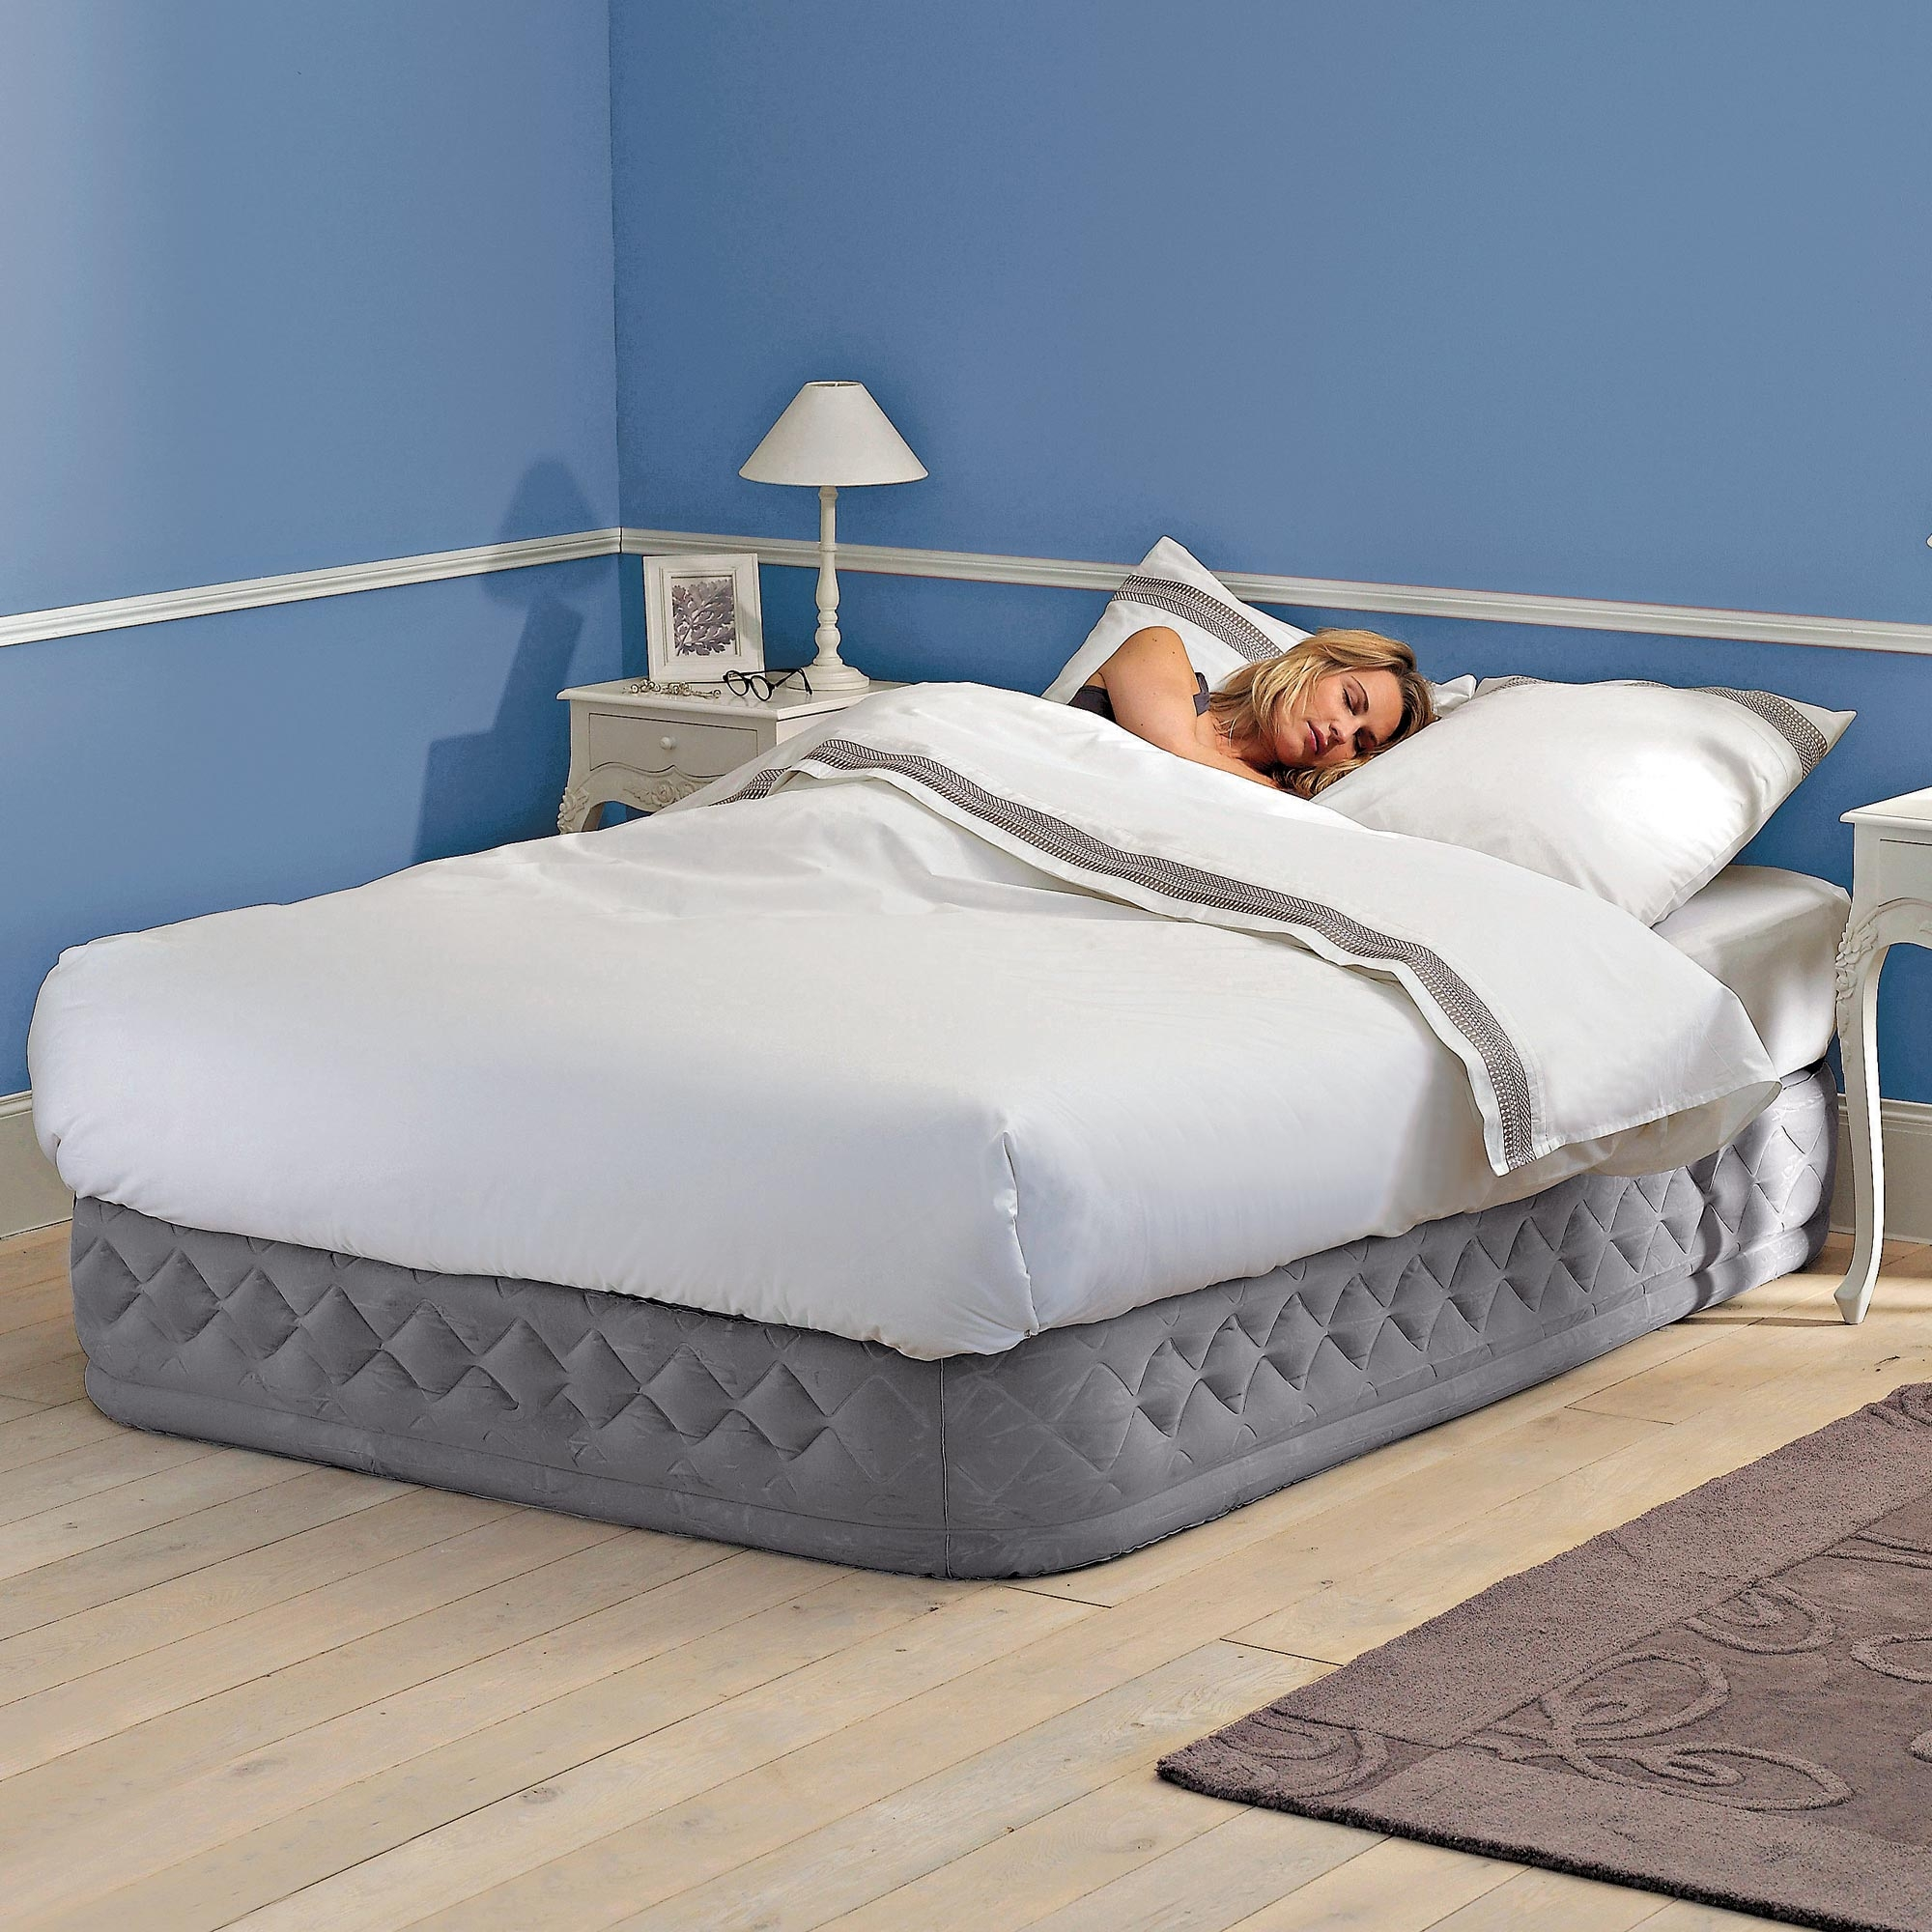 Matelas gonflable places - Lit gonflable intex ...